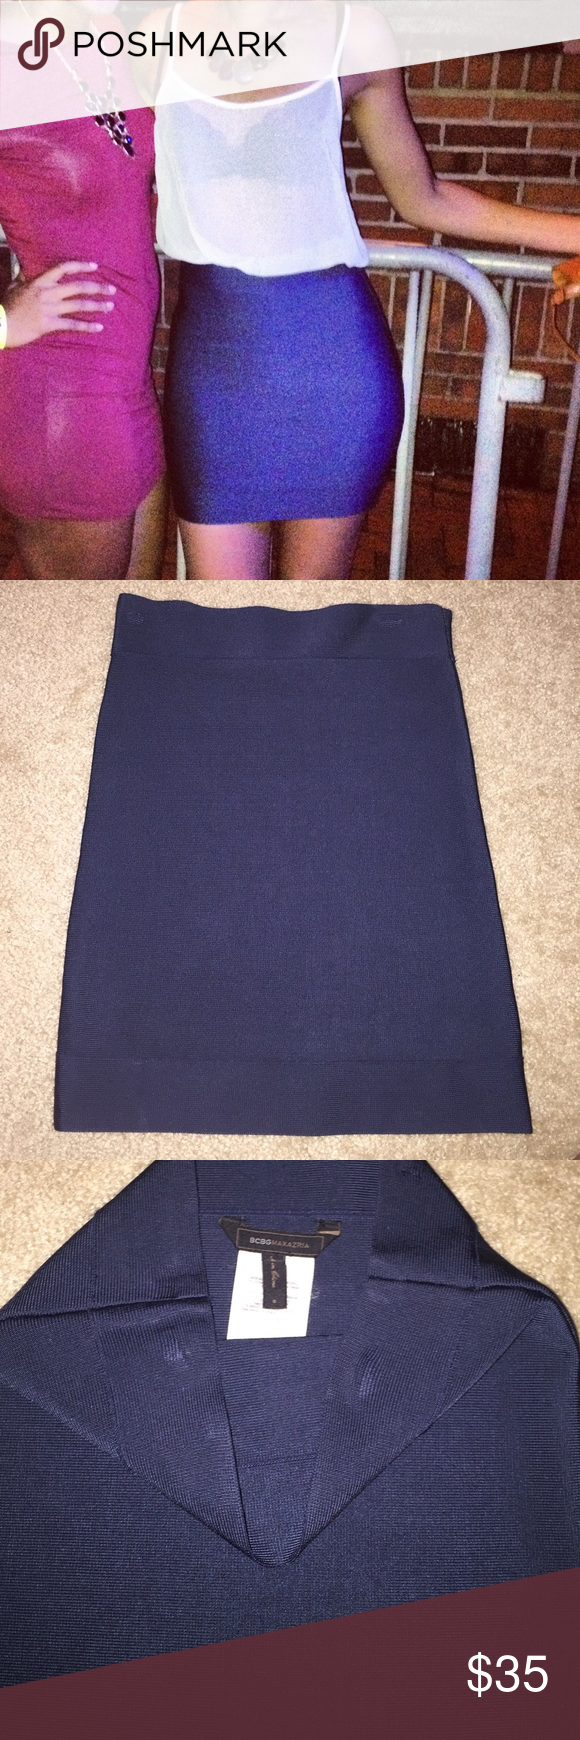 BCBGMaxAzria- Gardenia Bandage Power Skirt Designer navy blue fitted mini skirt! BCBGMaxAzria Skirts Mini